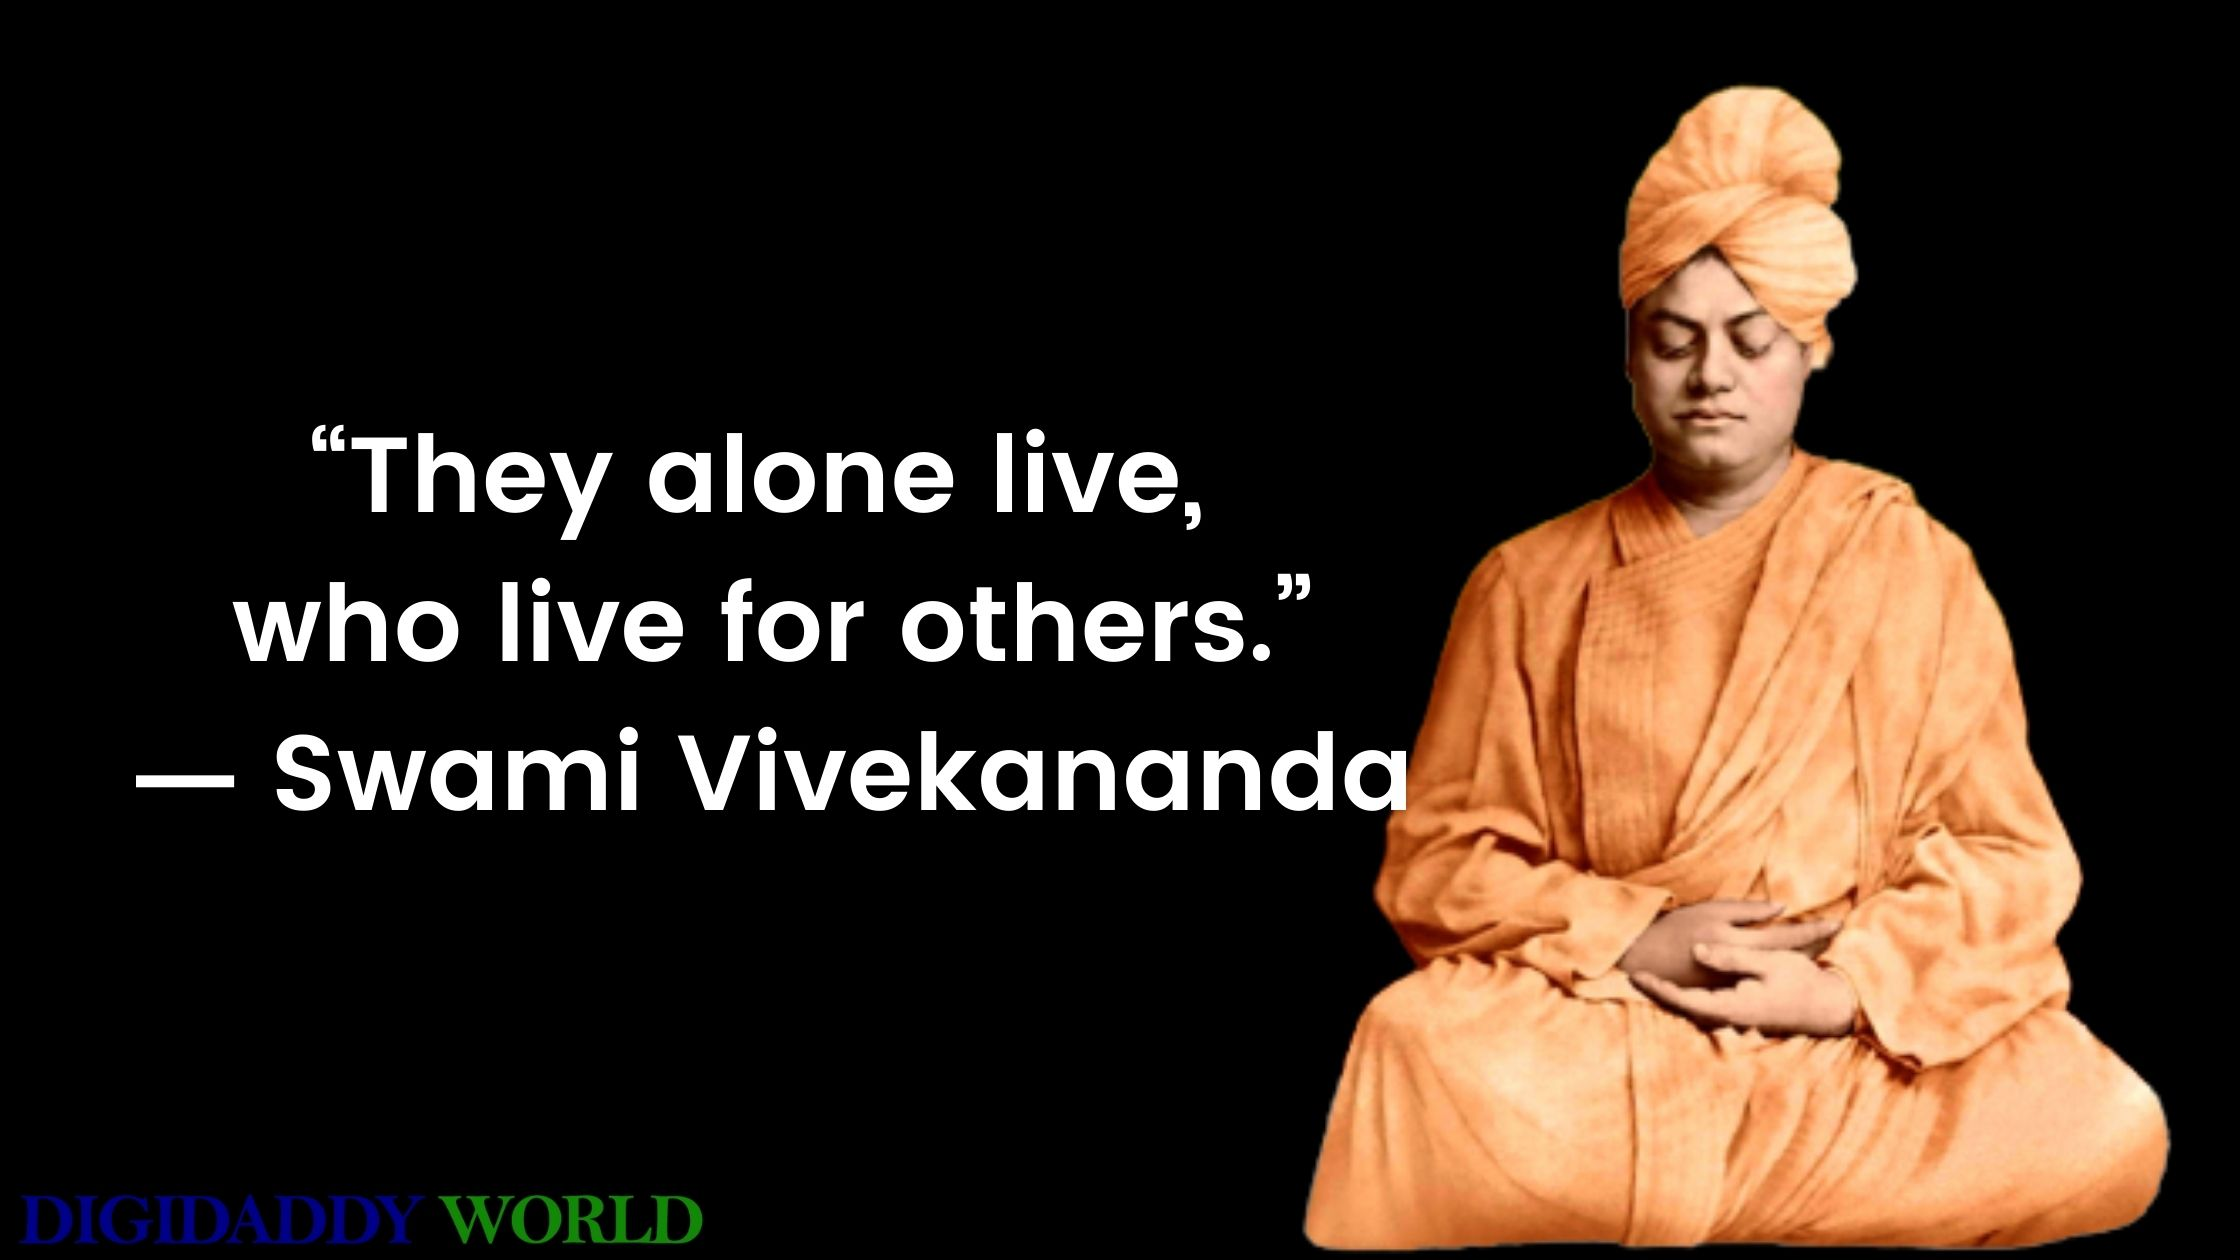 Swami Vivekananda Quotes and Thoughts